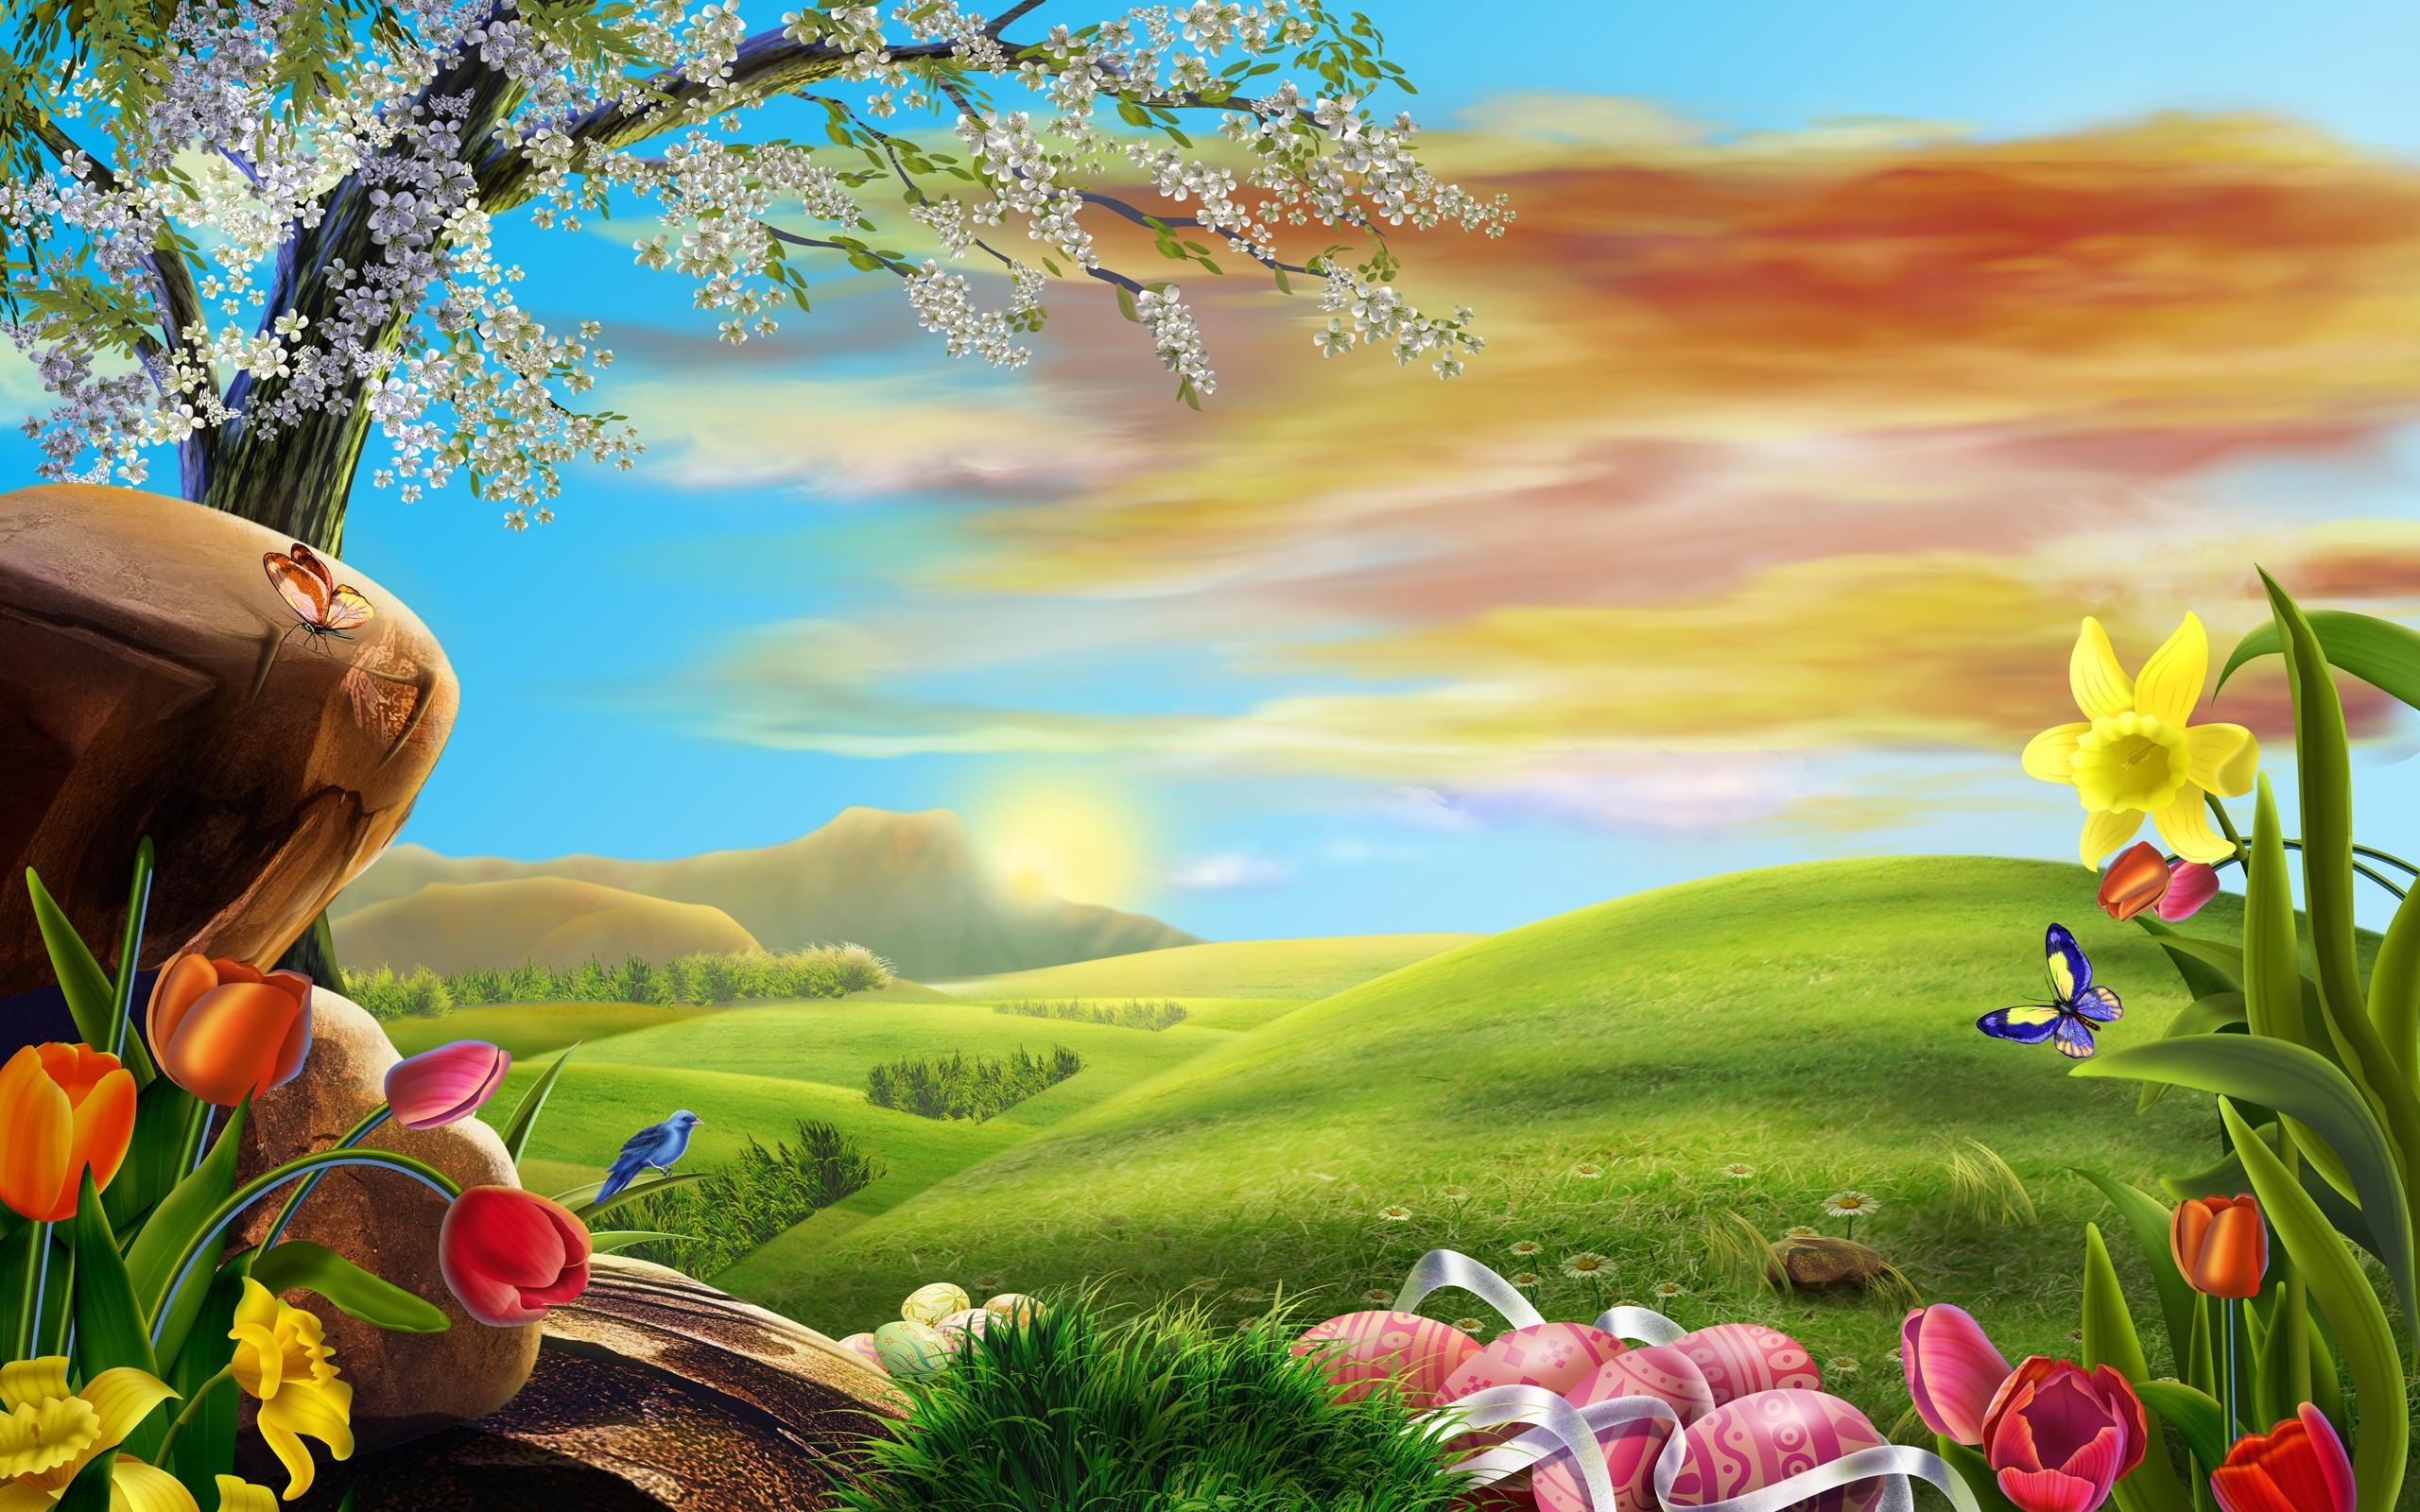 3d wallpapers of nature dowload 3d hd pictures.